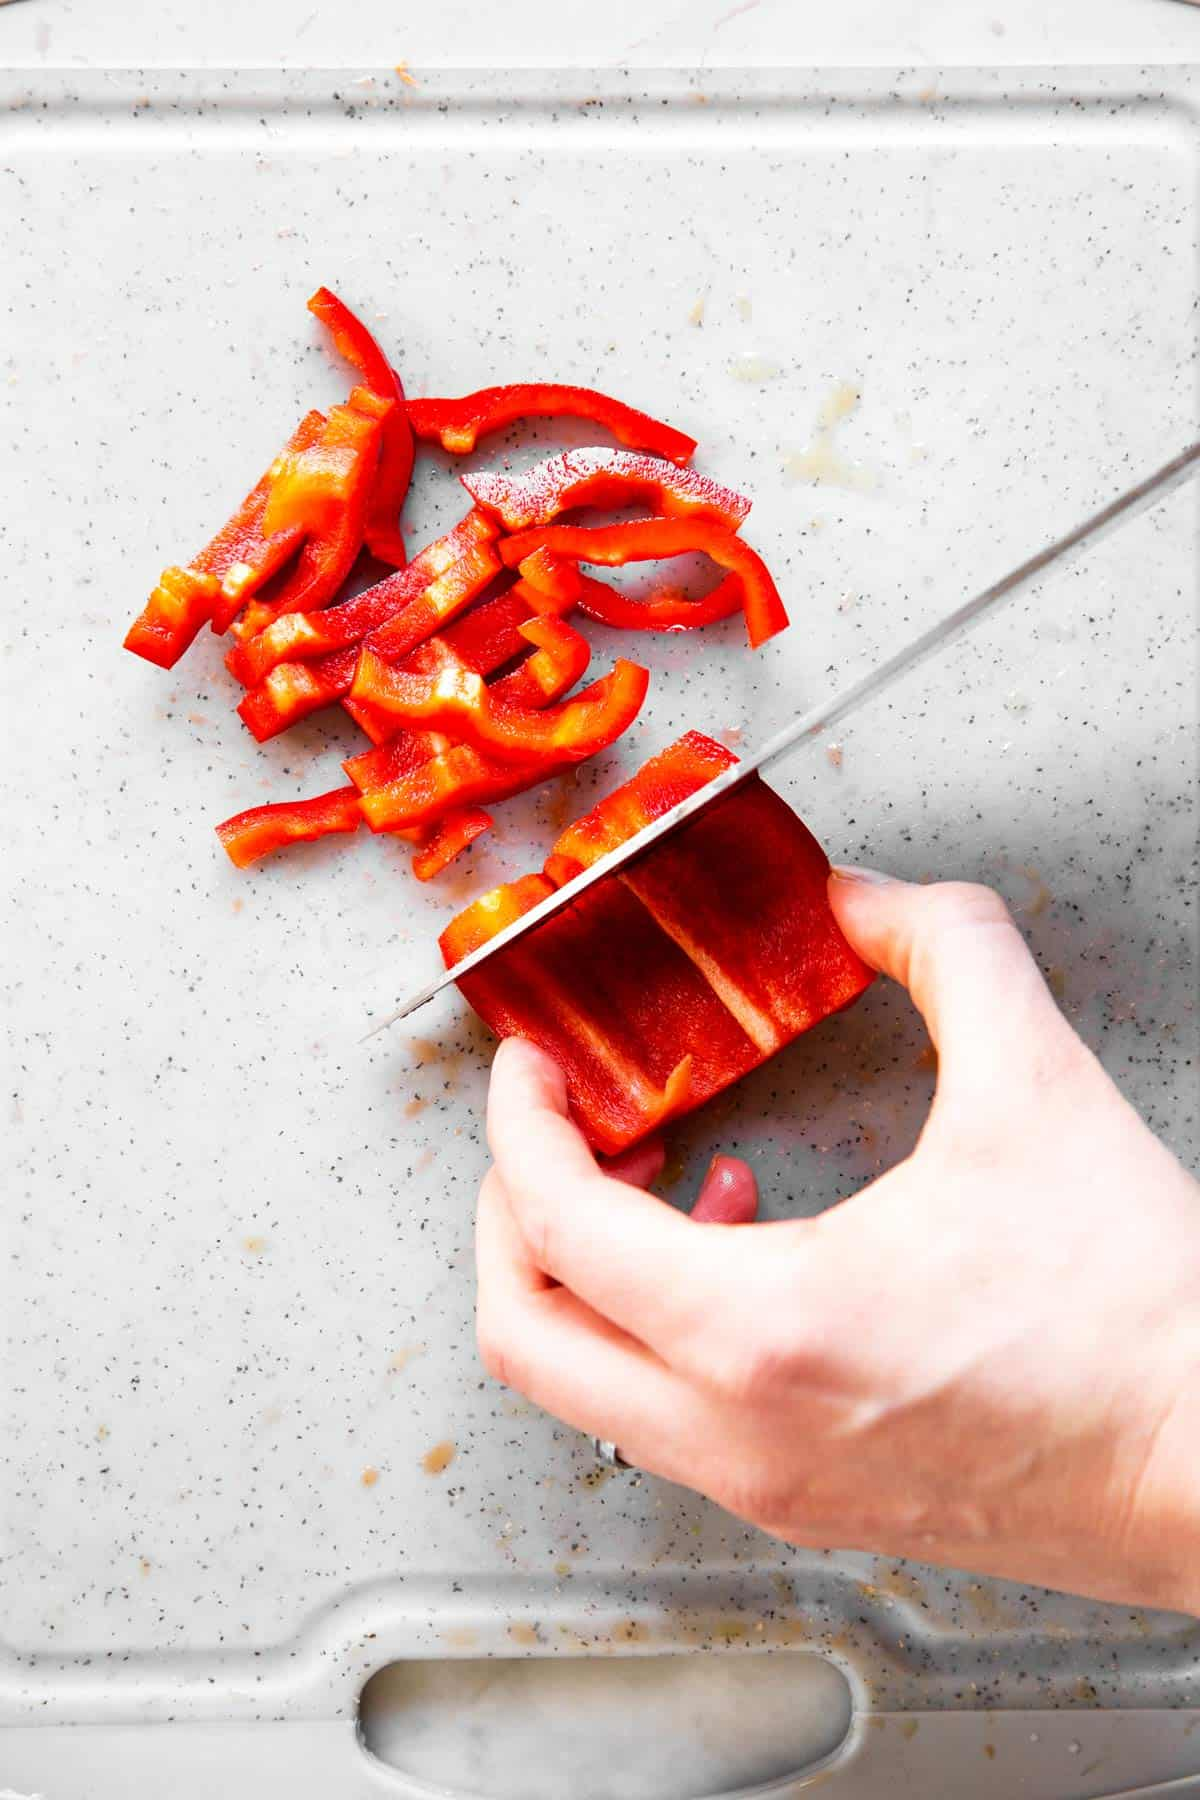 female hand slicing red bell pepper into thin slices